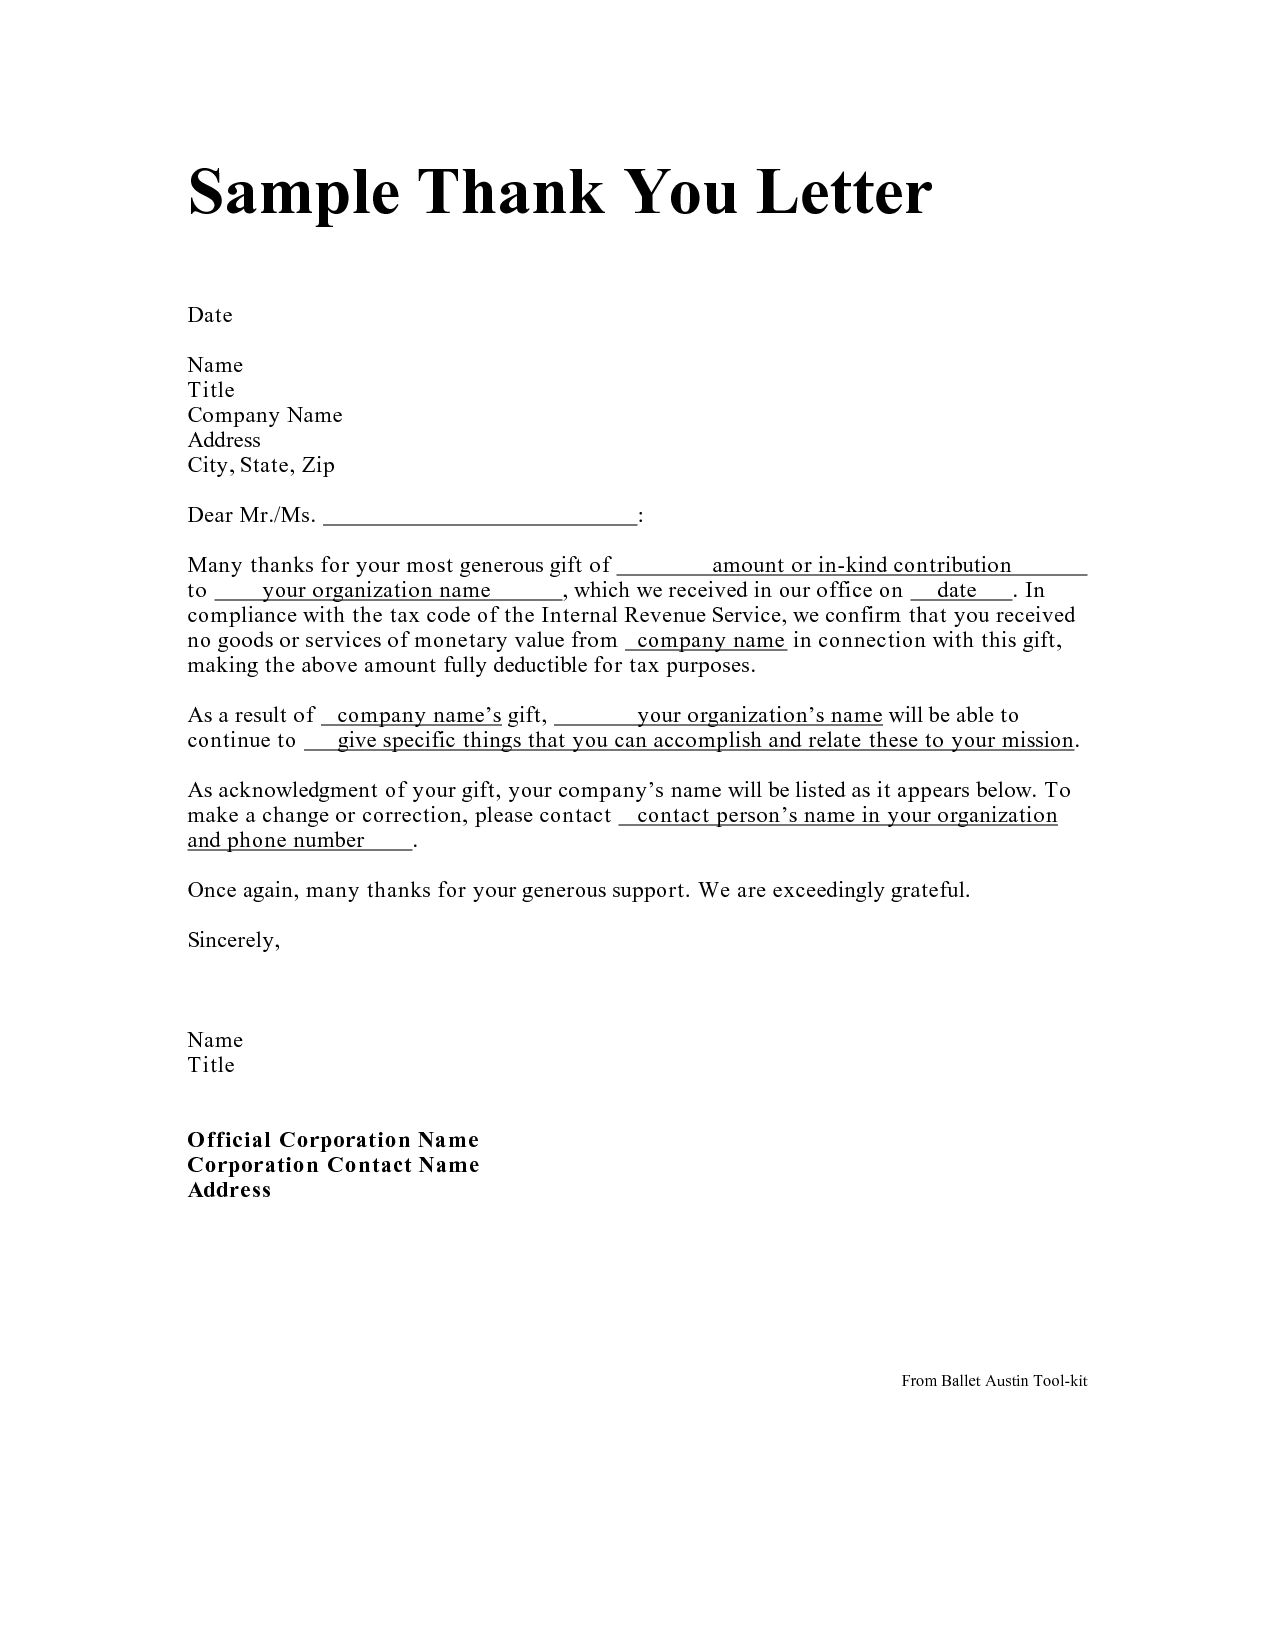 thank you letter samples